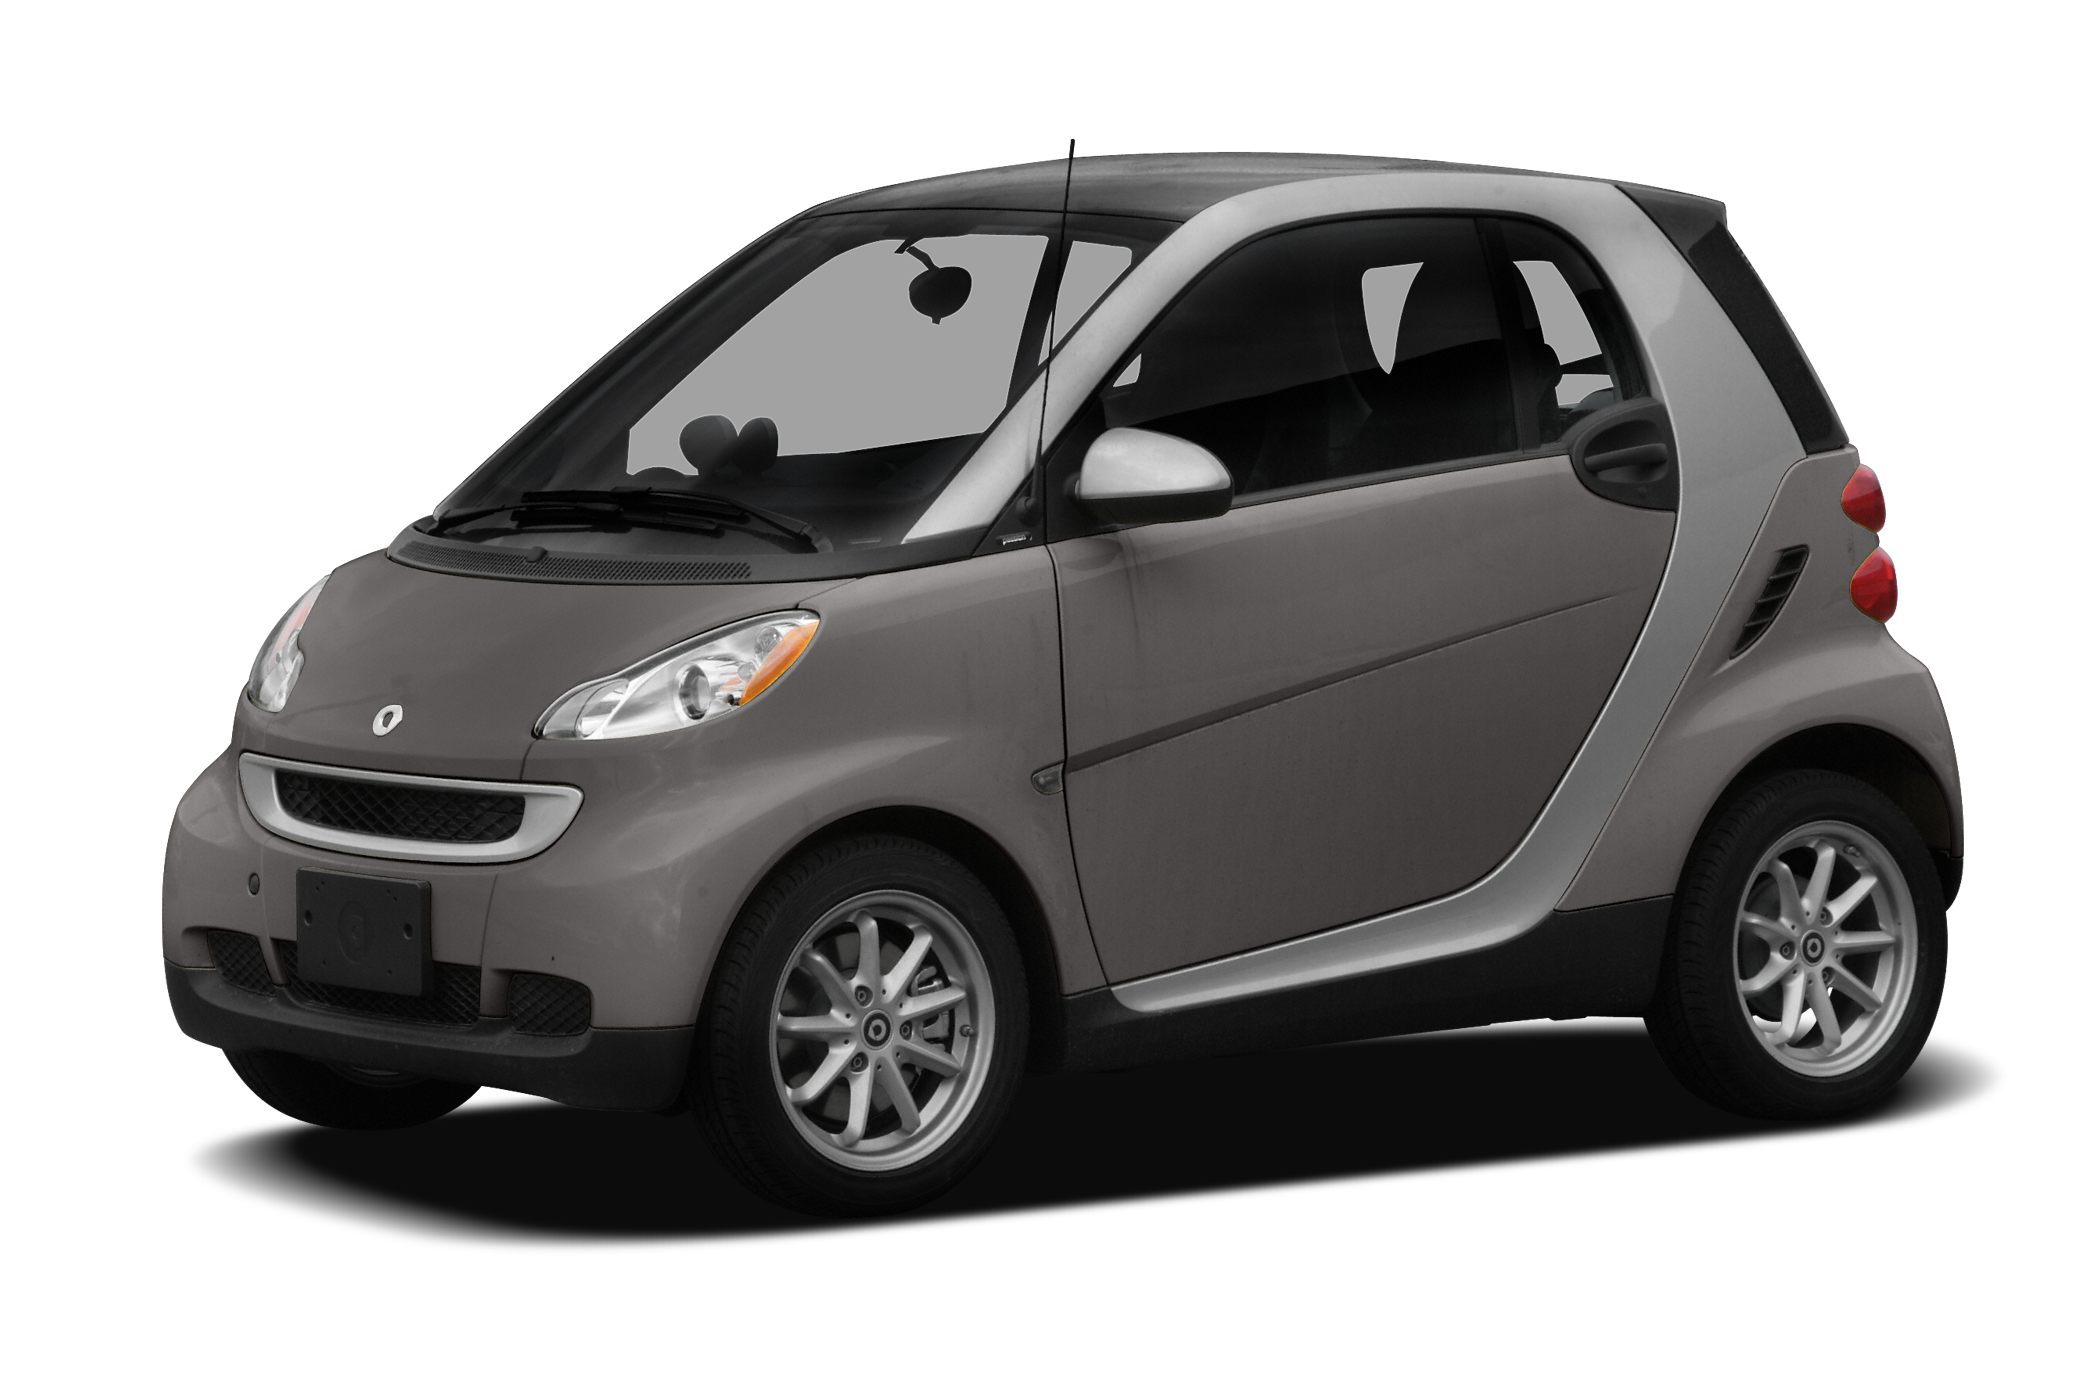 2010 Smart ForTwo Pure Coupe for sale in Sacramento for $10,000 with 37,442 miles